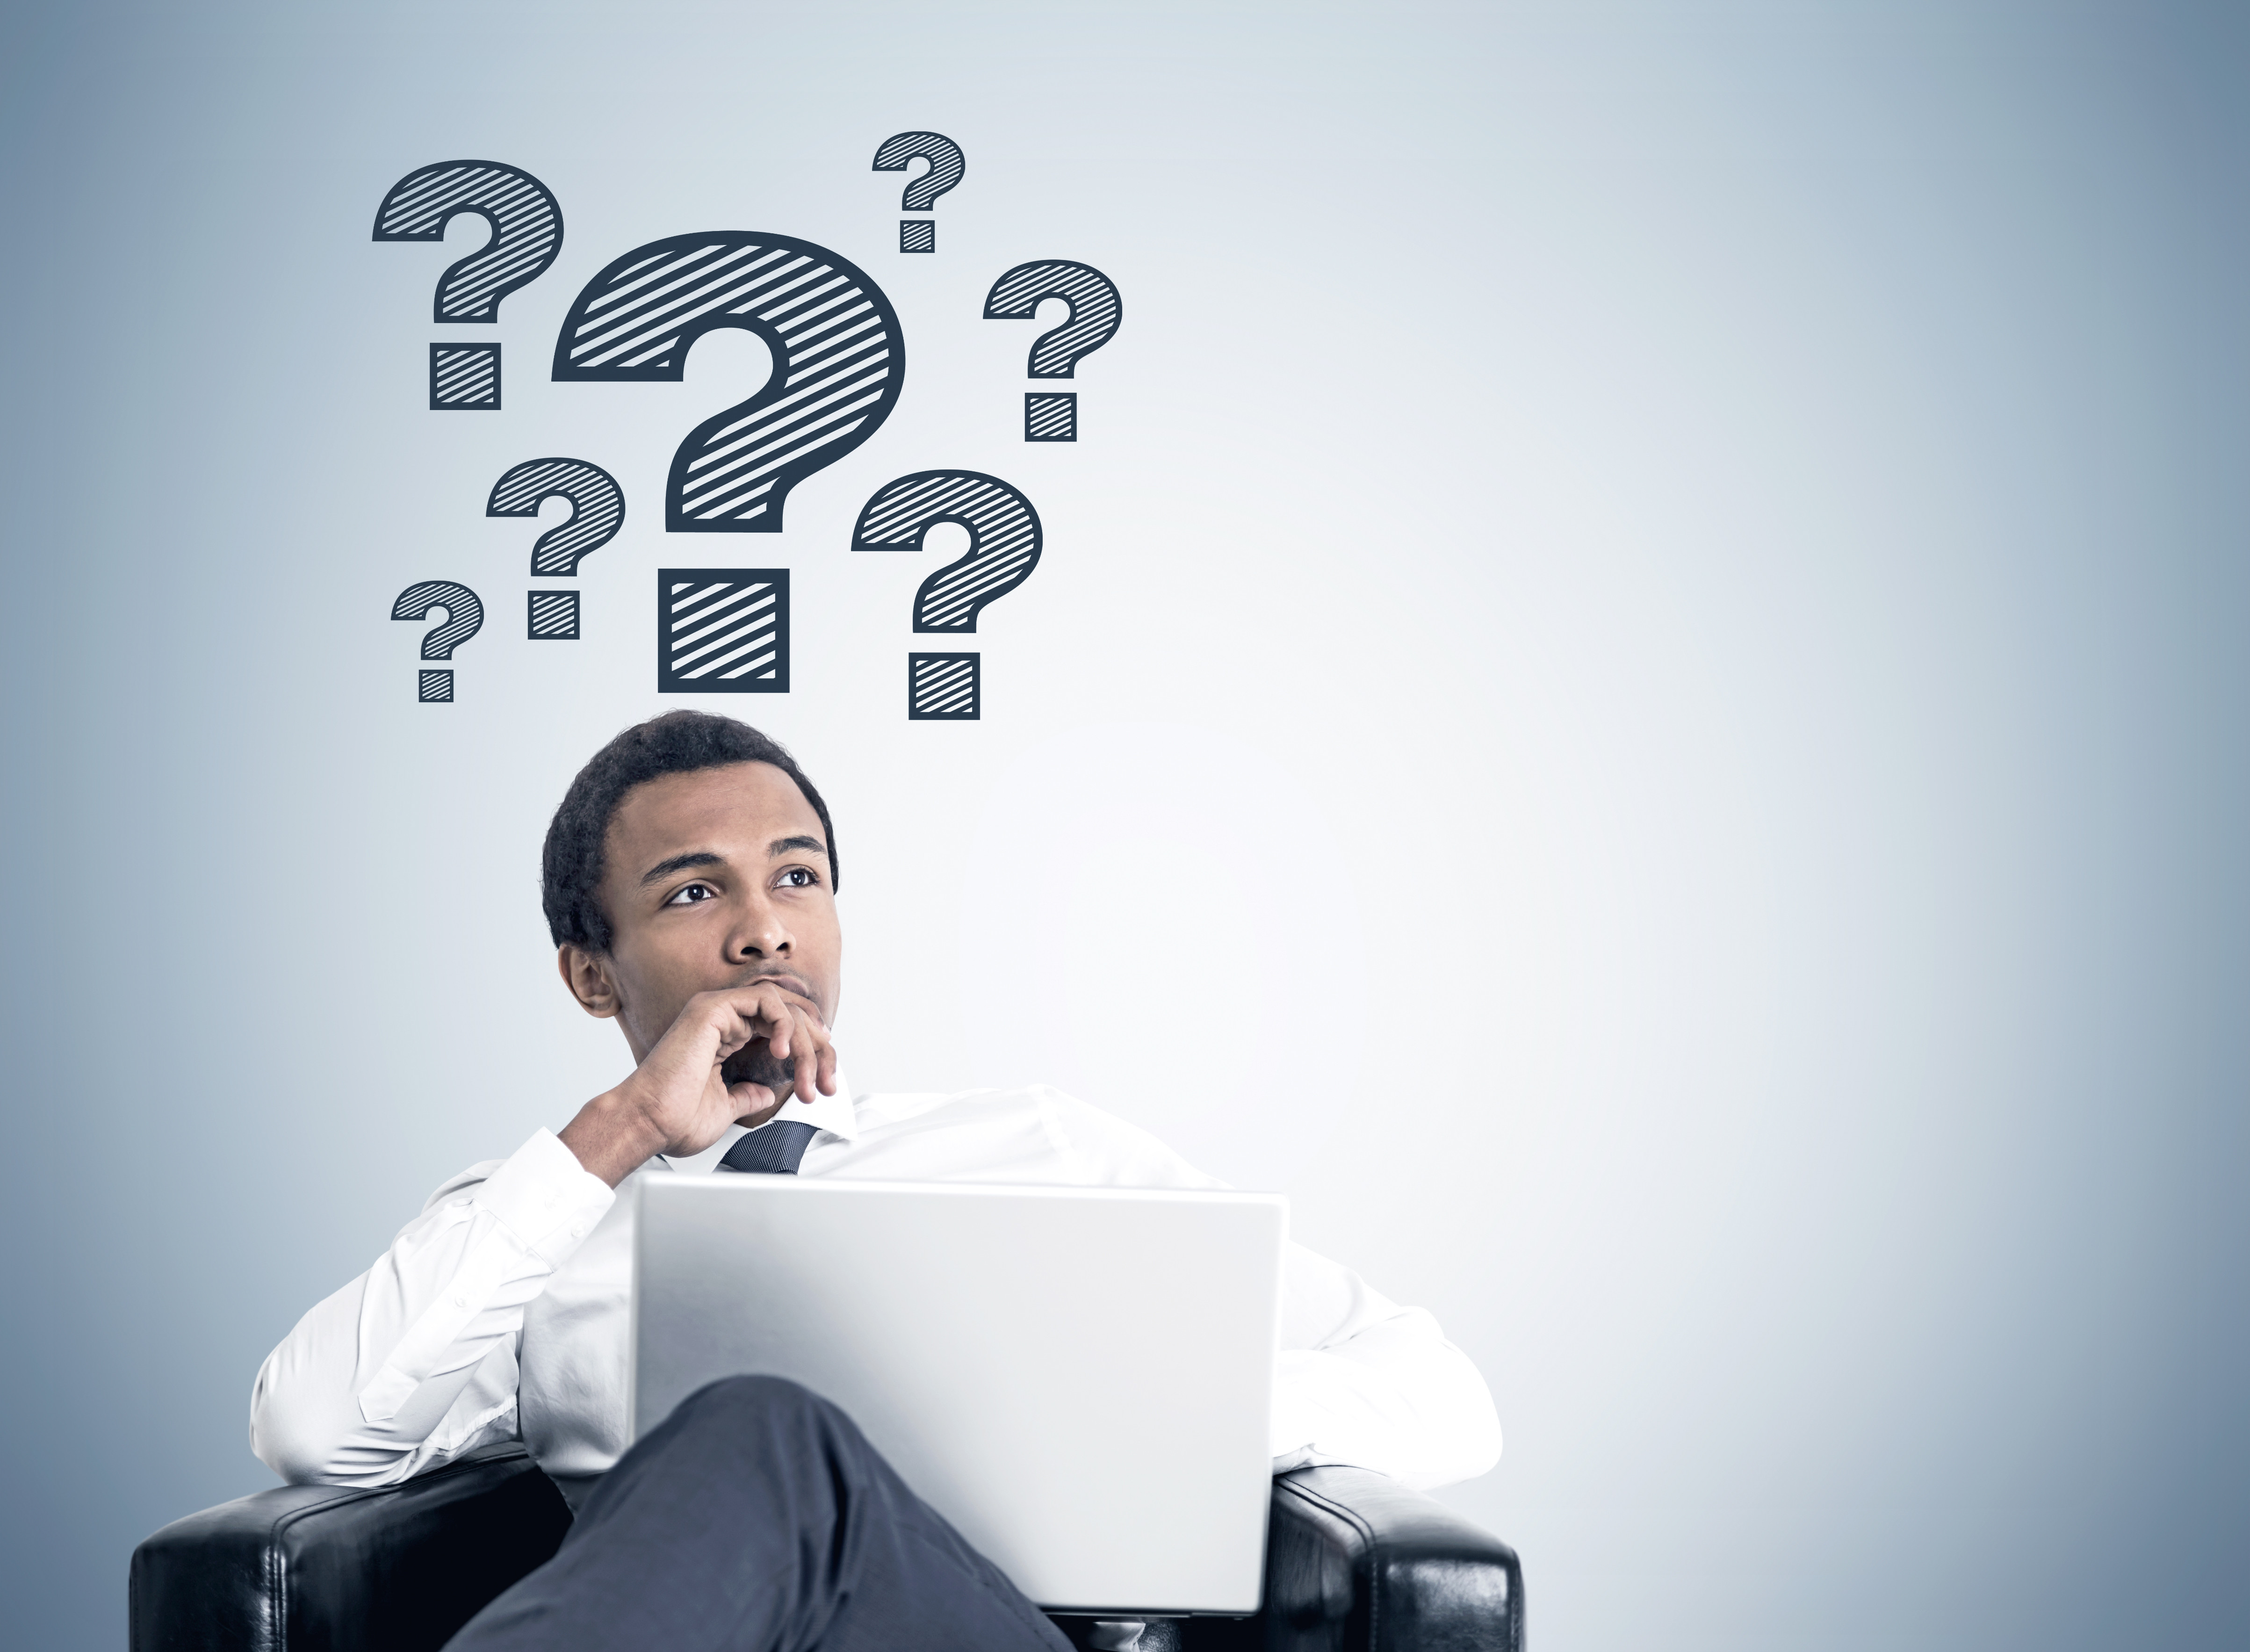 Podcast Listener's Marketing Questions